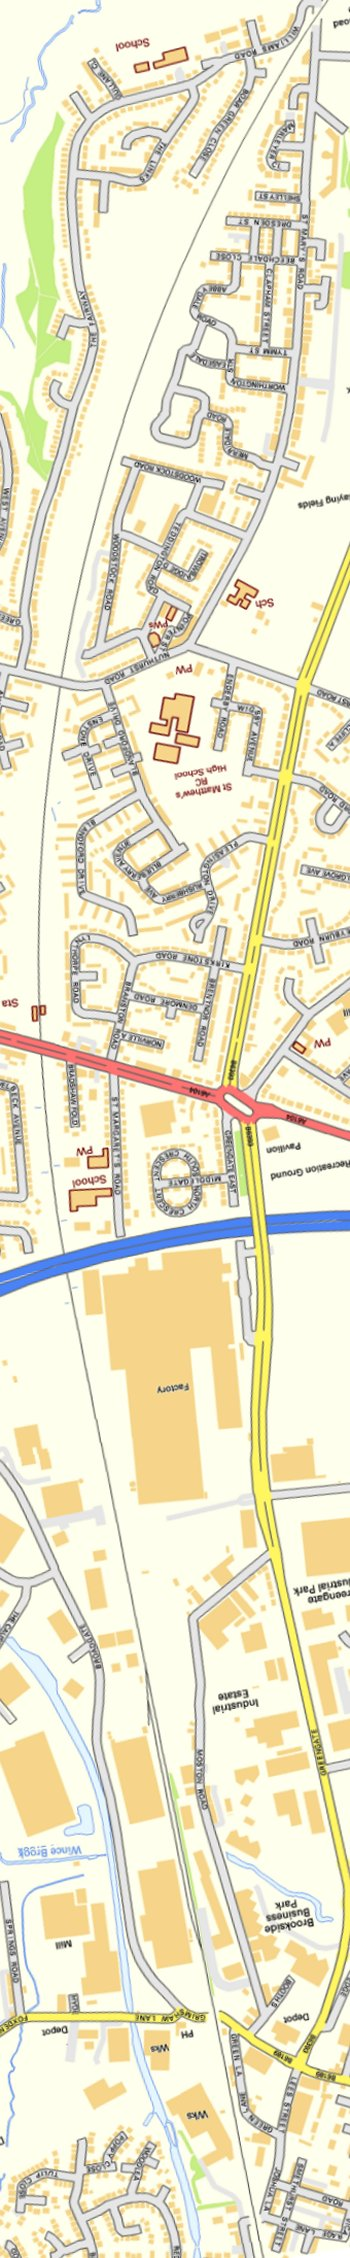 Section from Ordnance Survey OpenSource mapping 2013 showing L&YR railway line from Moston Station to Joshua Lane bridge